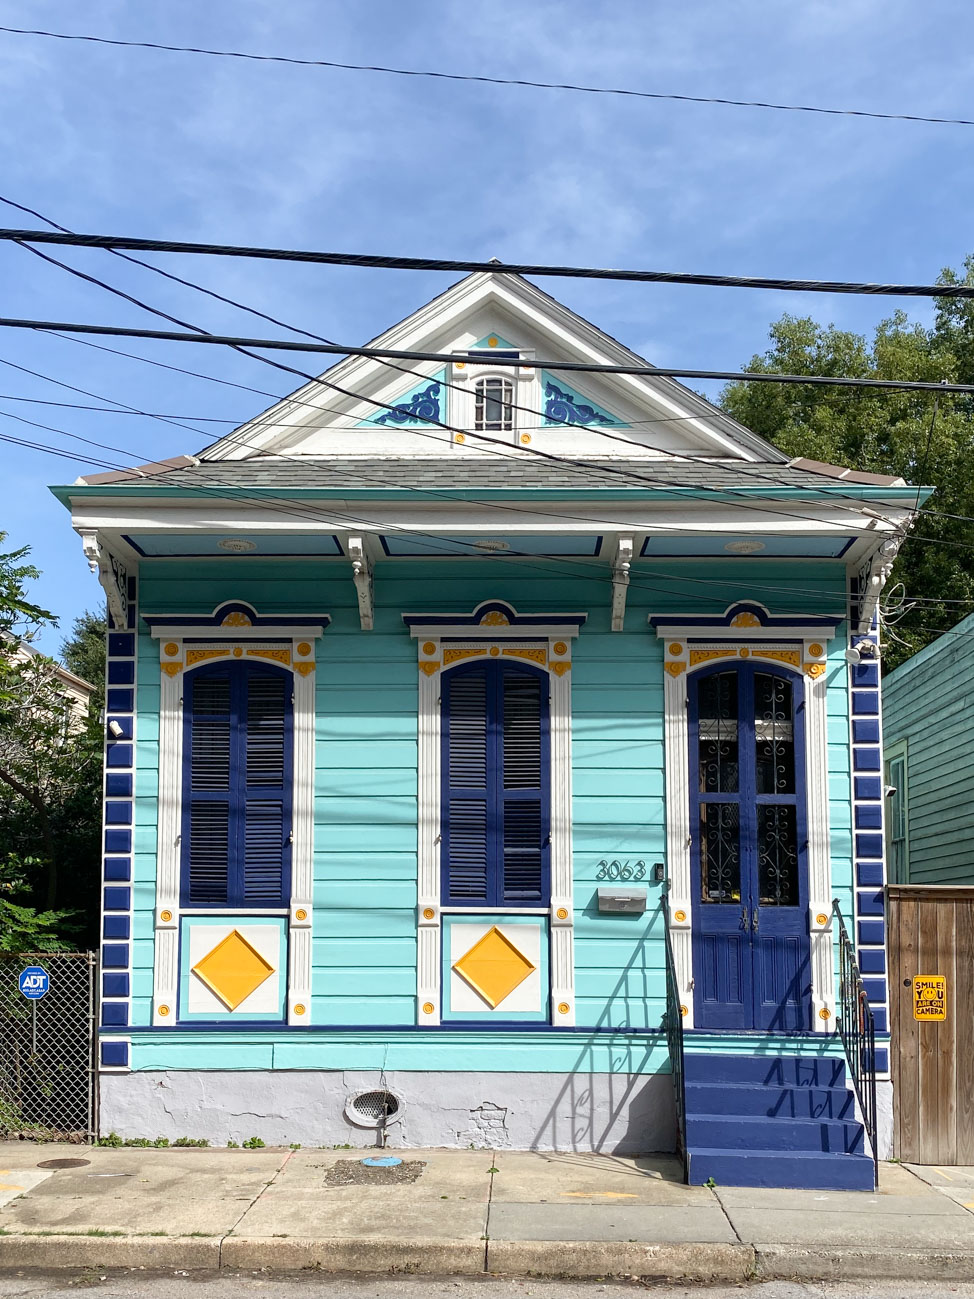 Bywater District in New Orleans